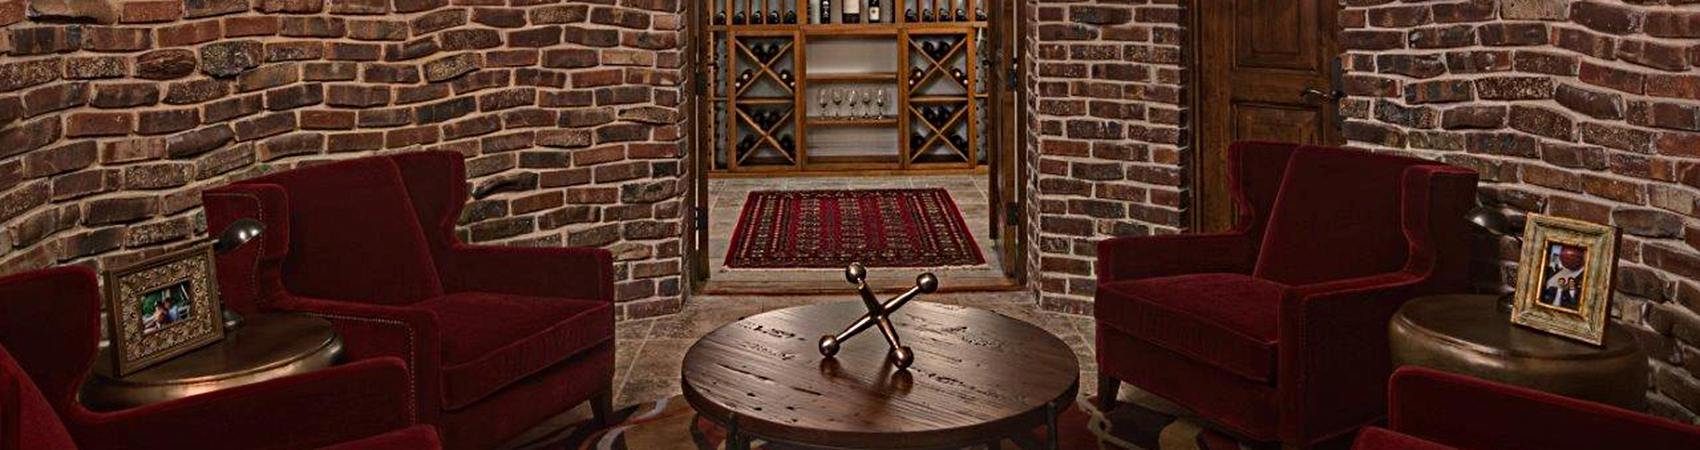 wine-brick-room